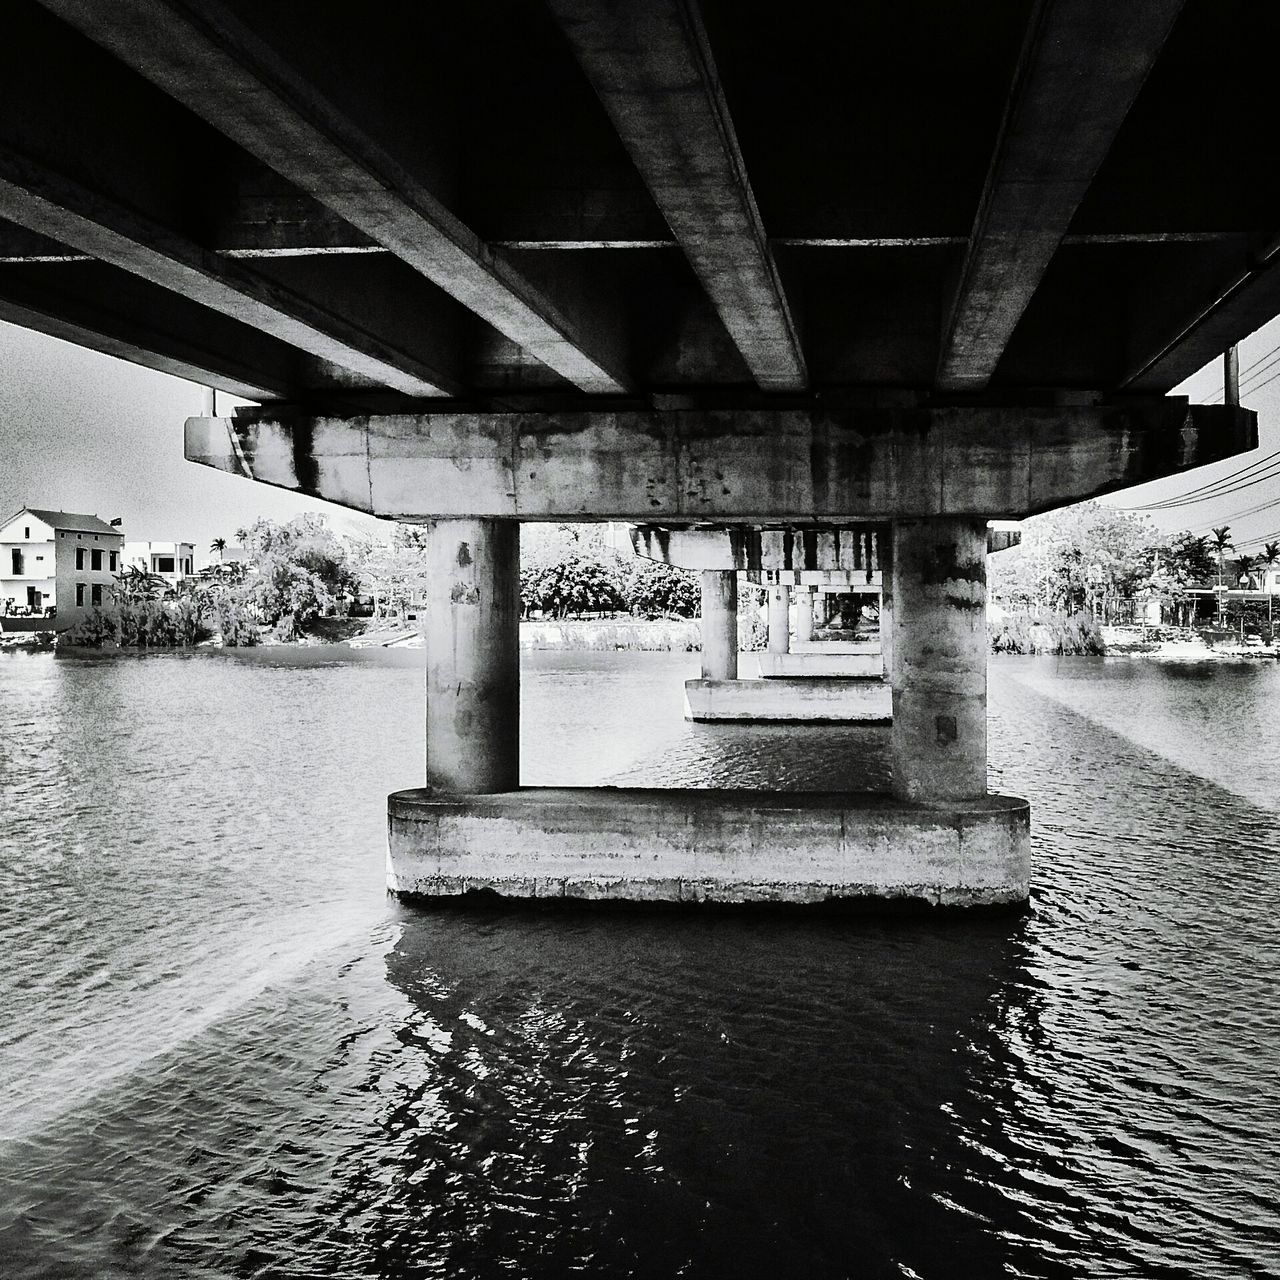 bridge - man made structure, connection, underneath, architecture, below, built structure, water, river, engineering, architectural column, transportation, bridge, under, covered bridge, day, outdoors, waterfront, nature, no people